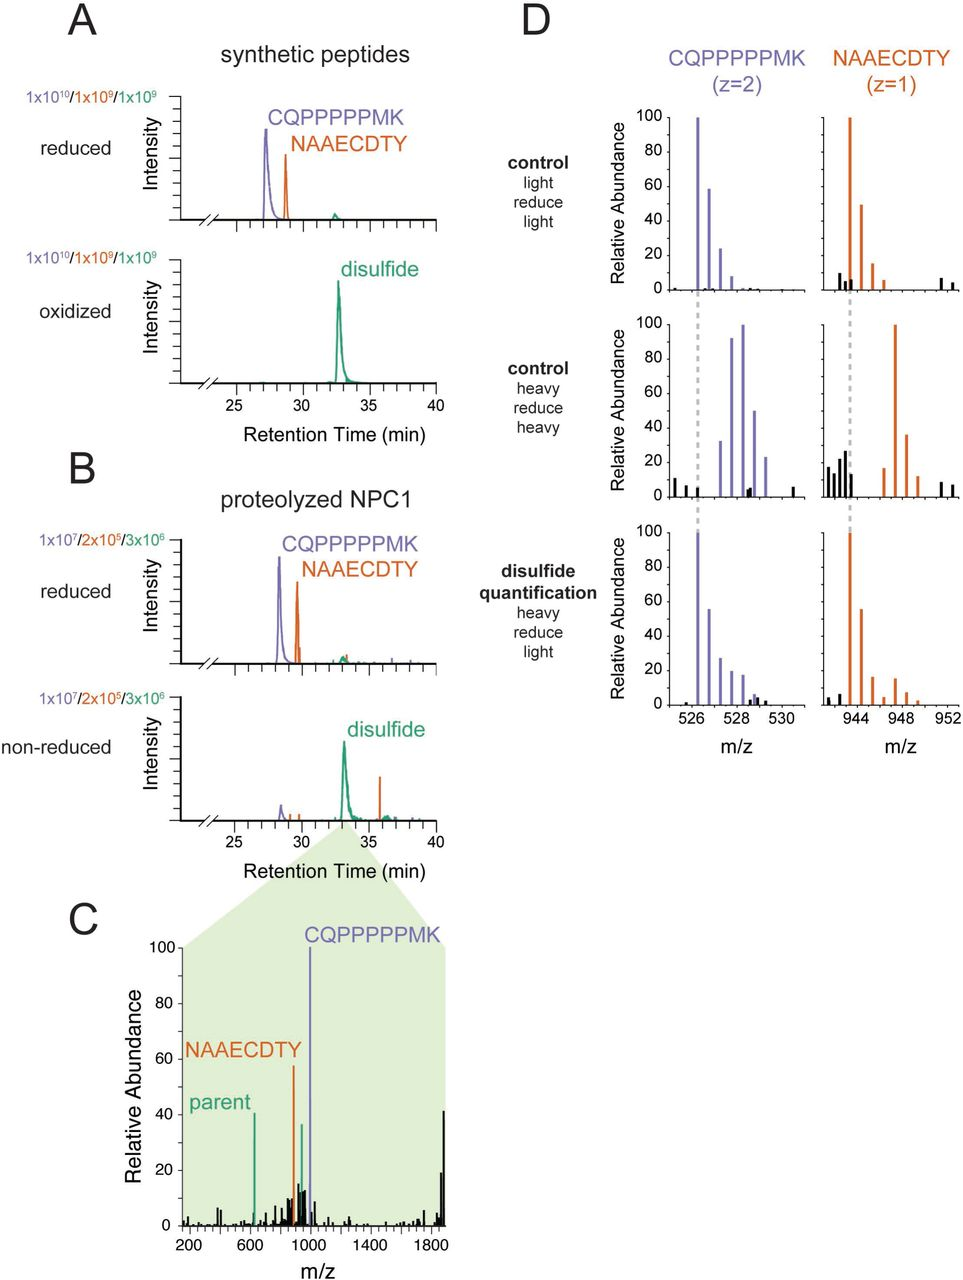 """Engineered cysteines C251 and C929 form a disulfide bond in NPC1. (A) Extracted ion chromatograms from LC-MS analysis of synthetic peptides corresponding to engineered cysteines in NPC1. In both samples, blue traces represent m/z = 526.2569 (corresponding to carbamidomethylated CQPPPPPMK from NPC1 P251C), red traces represent m/z = 943.3462 (corresponding to carbamidomethylated NAAECDTY from NPC1 L929C), and green traces represent m/z = 626.6005 (corresponding to the disulfide formed between CQPPPPPMK and NAAECDTY). The peptide standards CQPPPPPMK and NAAECDTY were produced by solid phase synthesis and either reduced and carbamidomethylated or oxidized to the disulfide using Ellman's reagent. (B) Extracted ion chromatograms from LC-MS analysis of proteolyzed NPC1. Colors as in A. NPC1 protein was carbamidomethylated in the presence or absence of reducing agent prior to proteolysis. (C) EThcD mass spectrum from NPC1 sample in part B, demonstrating the reductive fragmentation of the putative disulfide precursor into ions with masses corresponding to the two constituent peptides. Peaks matching the mass of the peptide CQPPPPPMK (monoisotopic mass of thiol = 994.49 Da) are colored in blue; peaks matching the masses of the peptides NAAECDTY (monoisotopic mass of thiol radical = 885.32 Da) are colored in red; peaks matching multiple charge states of the spectrum's parent ions (m/z = 626.60, z = 3, corresponding to the disulfide) are colored in green. (D) MS1 mass spectra of NPC1 peptides whose disulfide content has been quantified using isotope-labeled iodoacetamide. Free thiols in purified NPC1 were labeled with 13 C 2 D 2 -iodoacetamide (""""heavy""""). Then the disulfides were reduced and the resulting reactive cysteines were labeled with iodoacetamide lacking isotope labels (""""light"""") followed by proteolysis and LC-MS analysis. Control samples were labeled with the same reagent before and after reduction (""""light/reduce/light"""" and """"heavy/reduce/heavy"""") to identify isotope dis"""